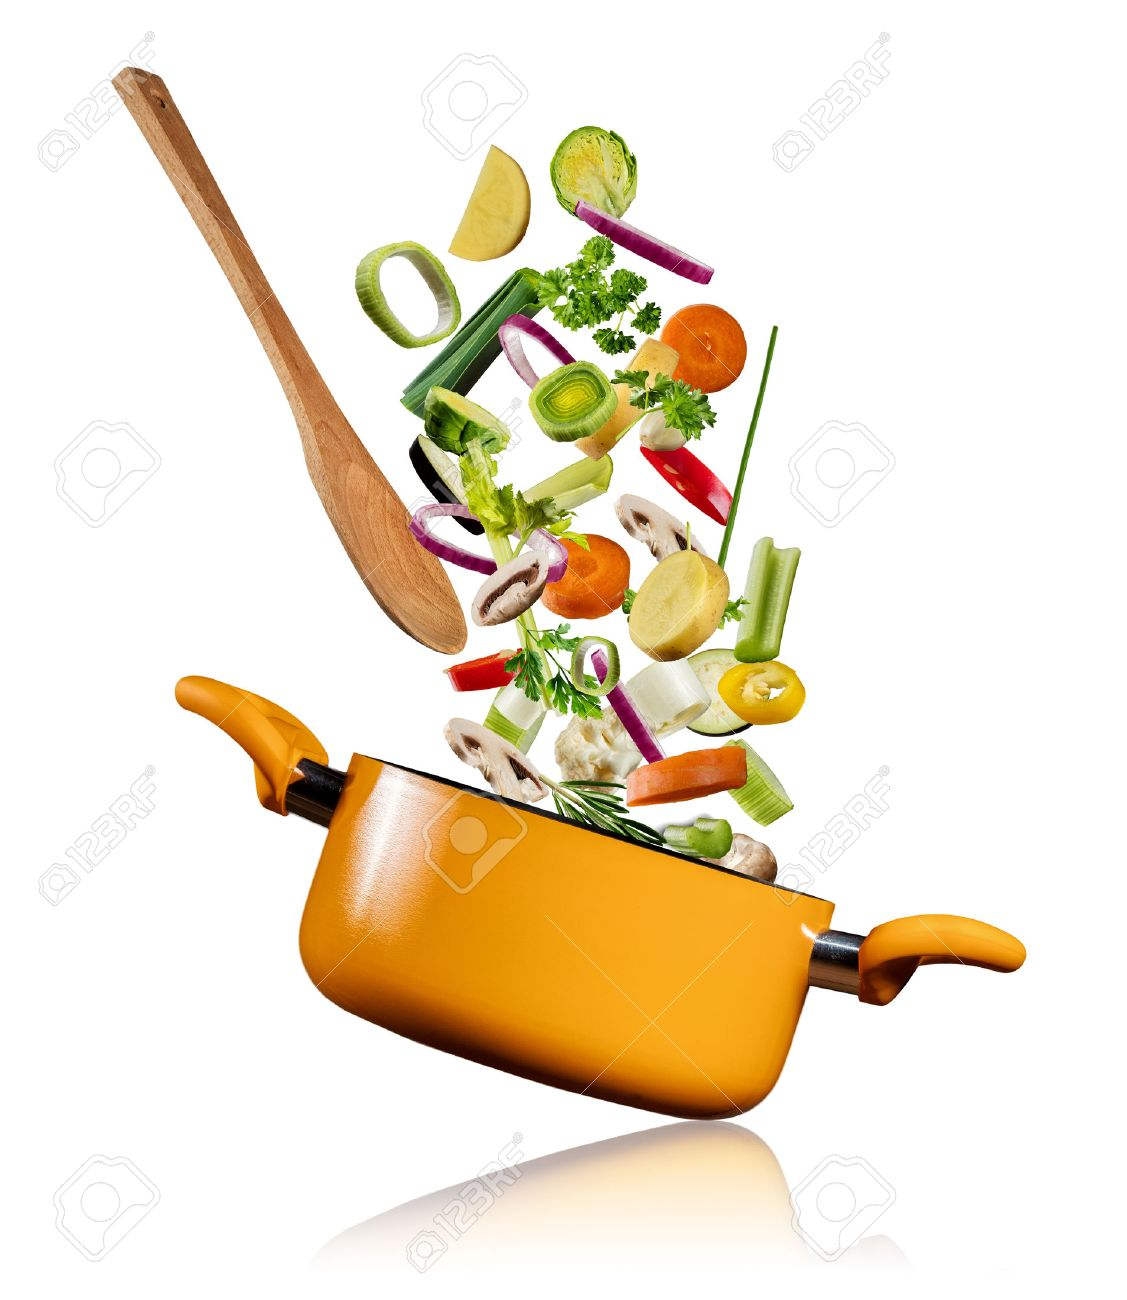 Fresh vegetables flying into a pot with wooden spoon, isolated on white background - 73597089